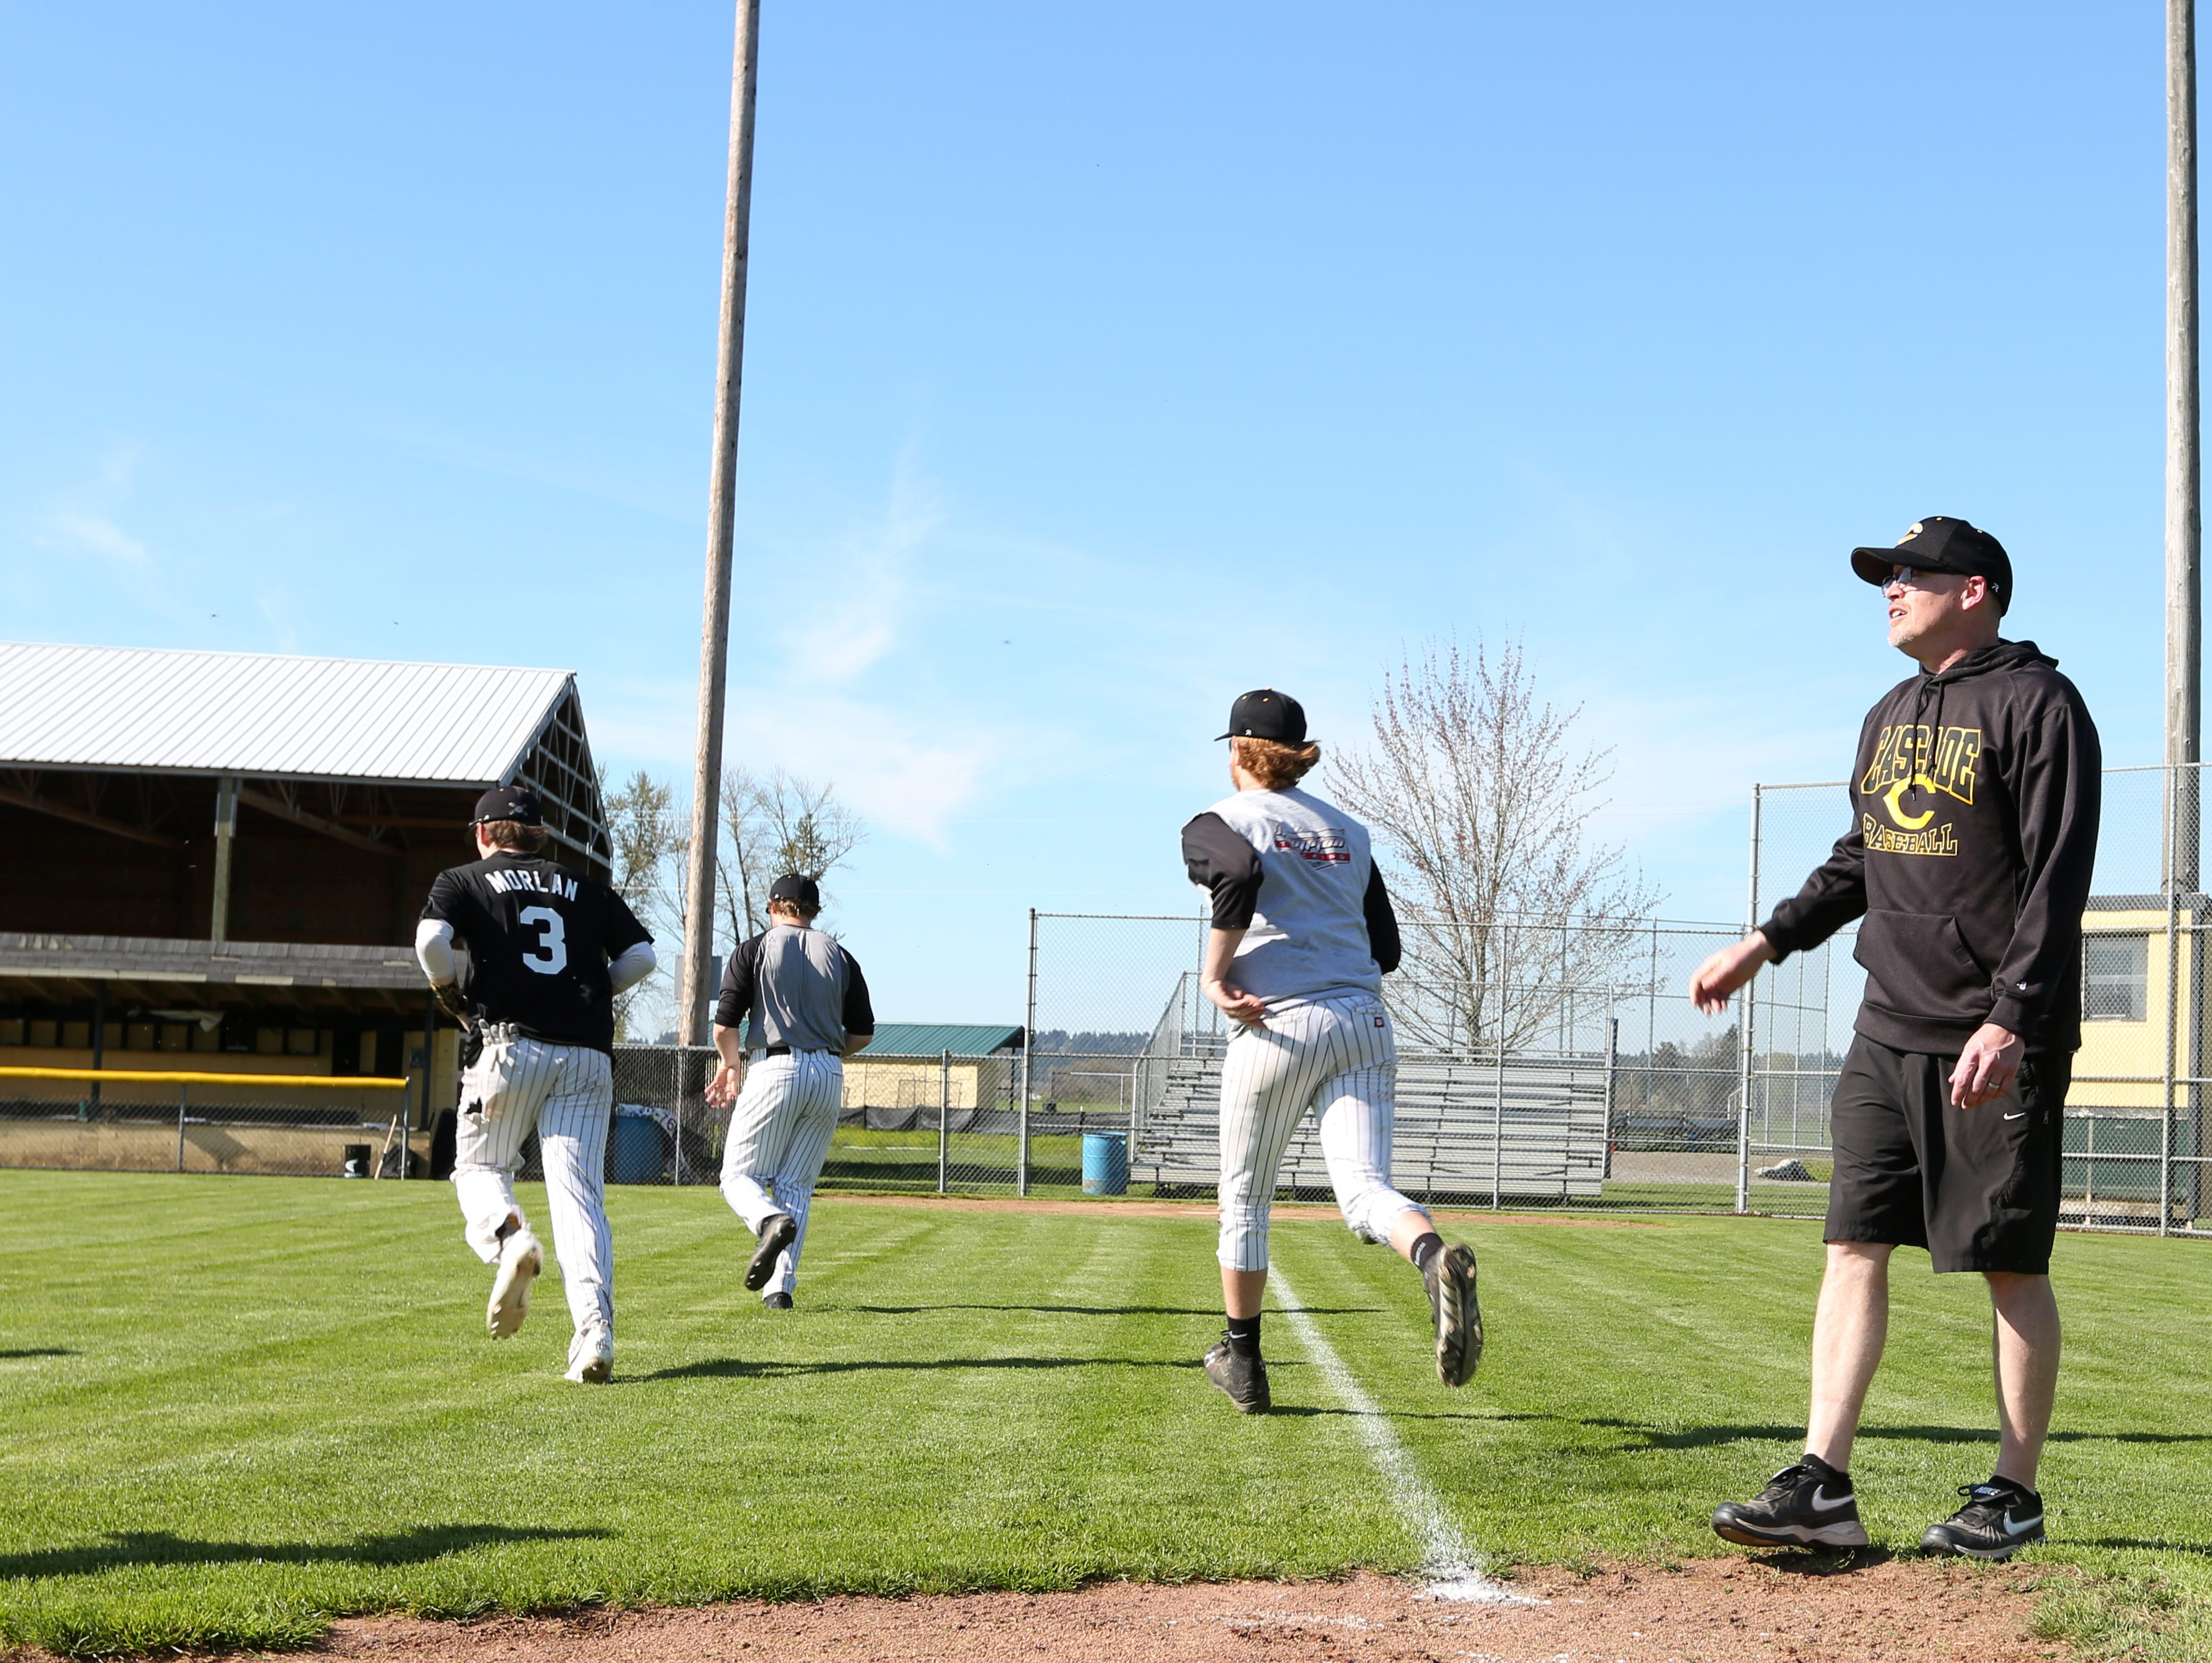 Head baseball coach Tim Ganfield works with players on Wednesday, March 30, 2016, at Cascade High School in Turner. Ganfield was head softball coach at Cascade for 14 years.